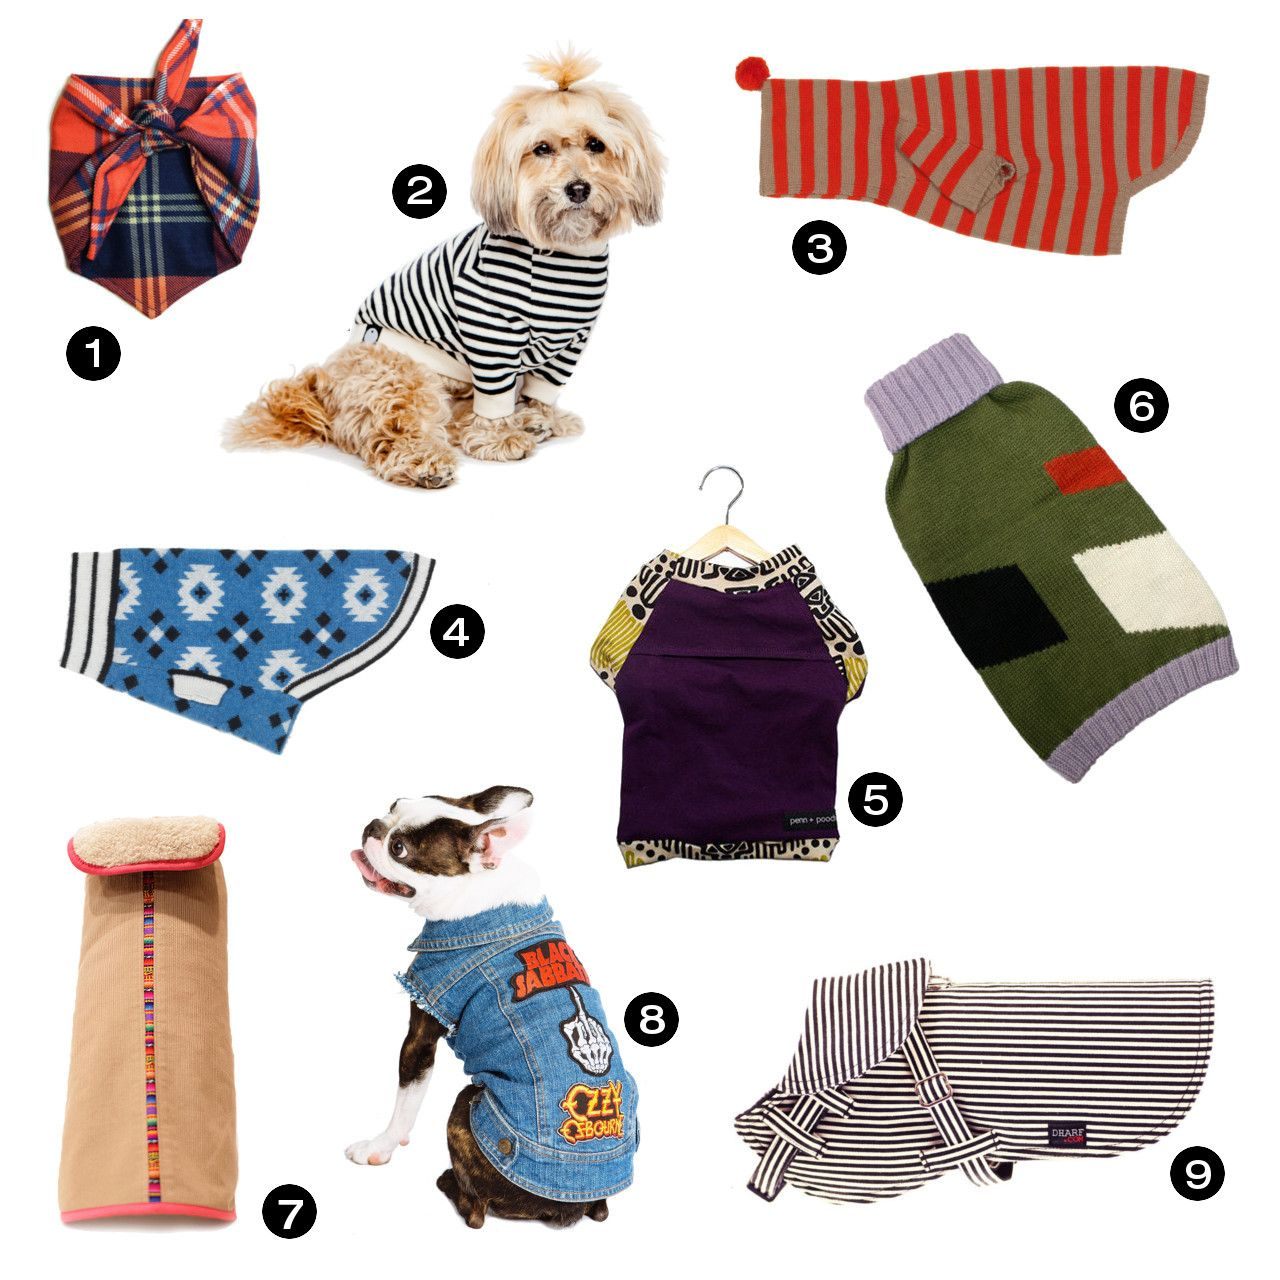 Holiday Gift Guide 26 Awesome Dog Coats Sweaters And More With Images Dog Coats Dog Clothes Dog Milk